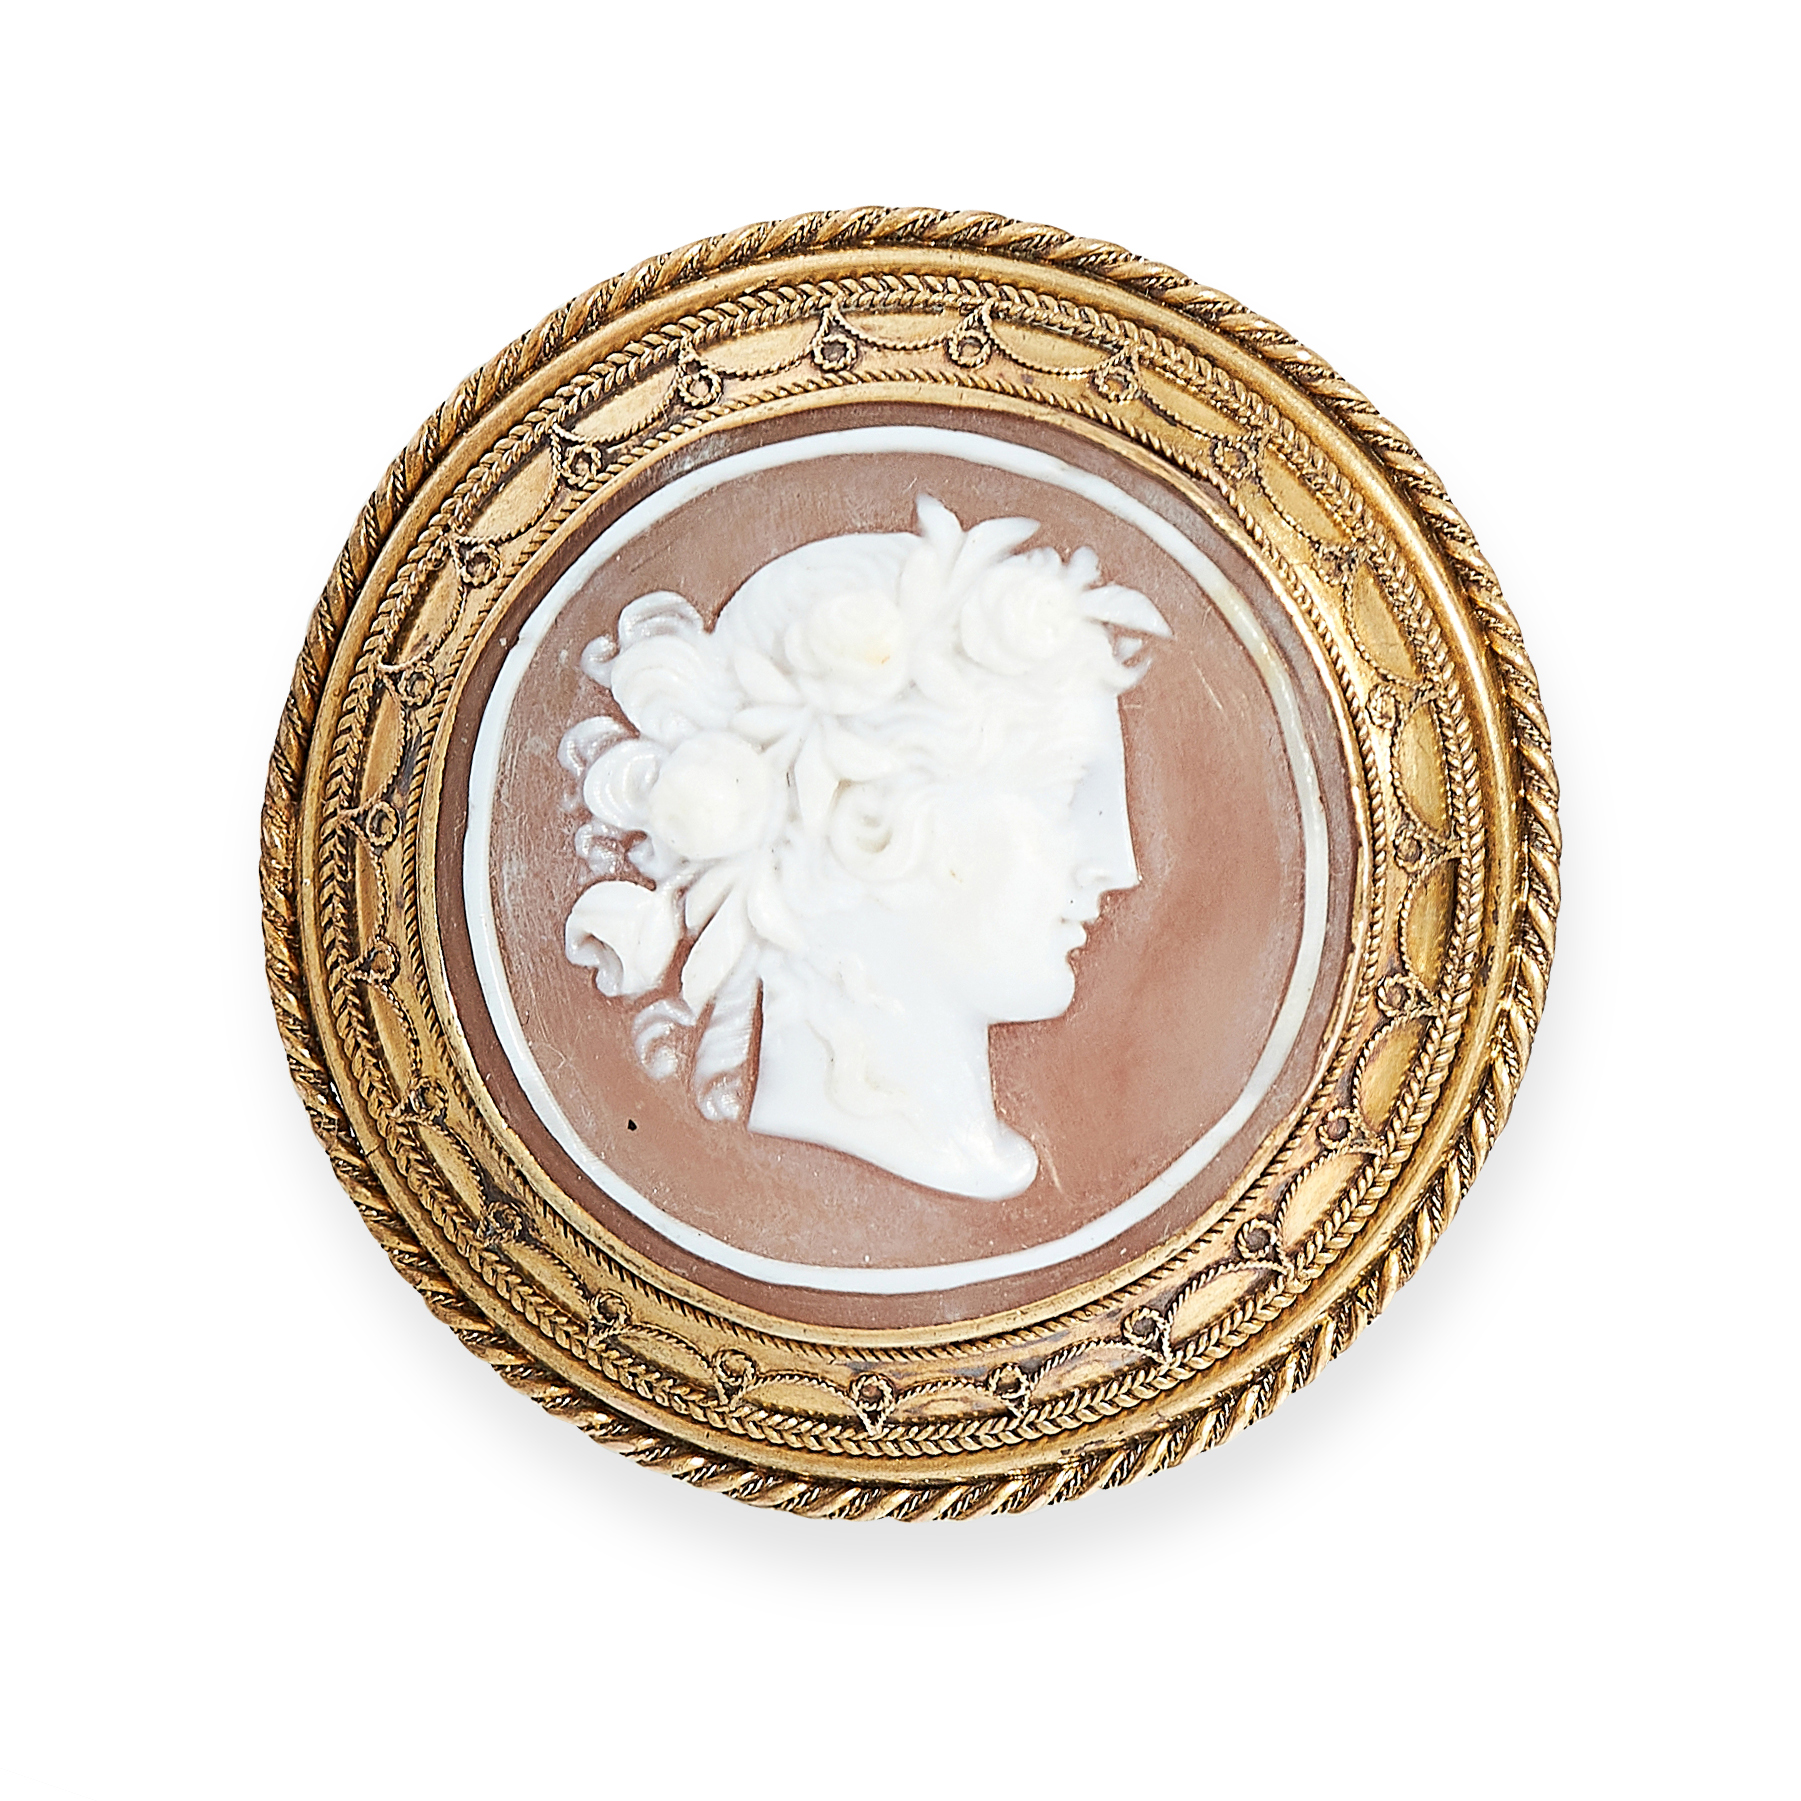 AN ANTIQUE CAMEO BROOCH, 19TH CENTURY in yellow gold, set to the centre with a circular carved cameo